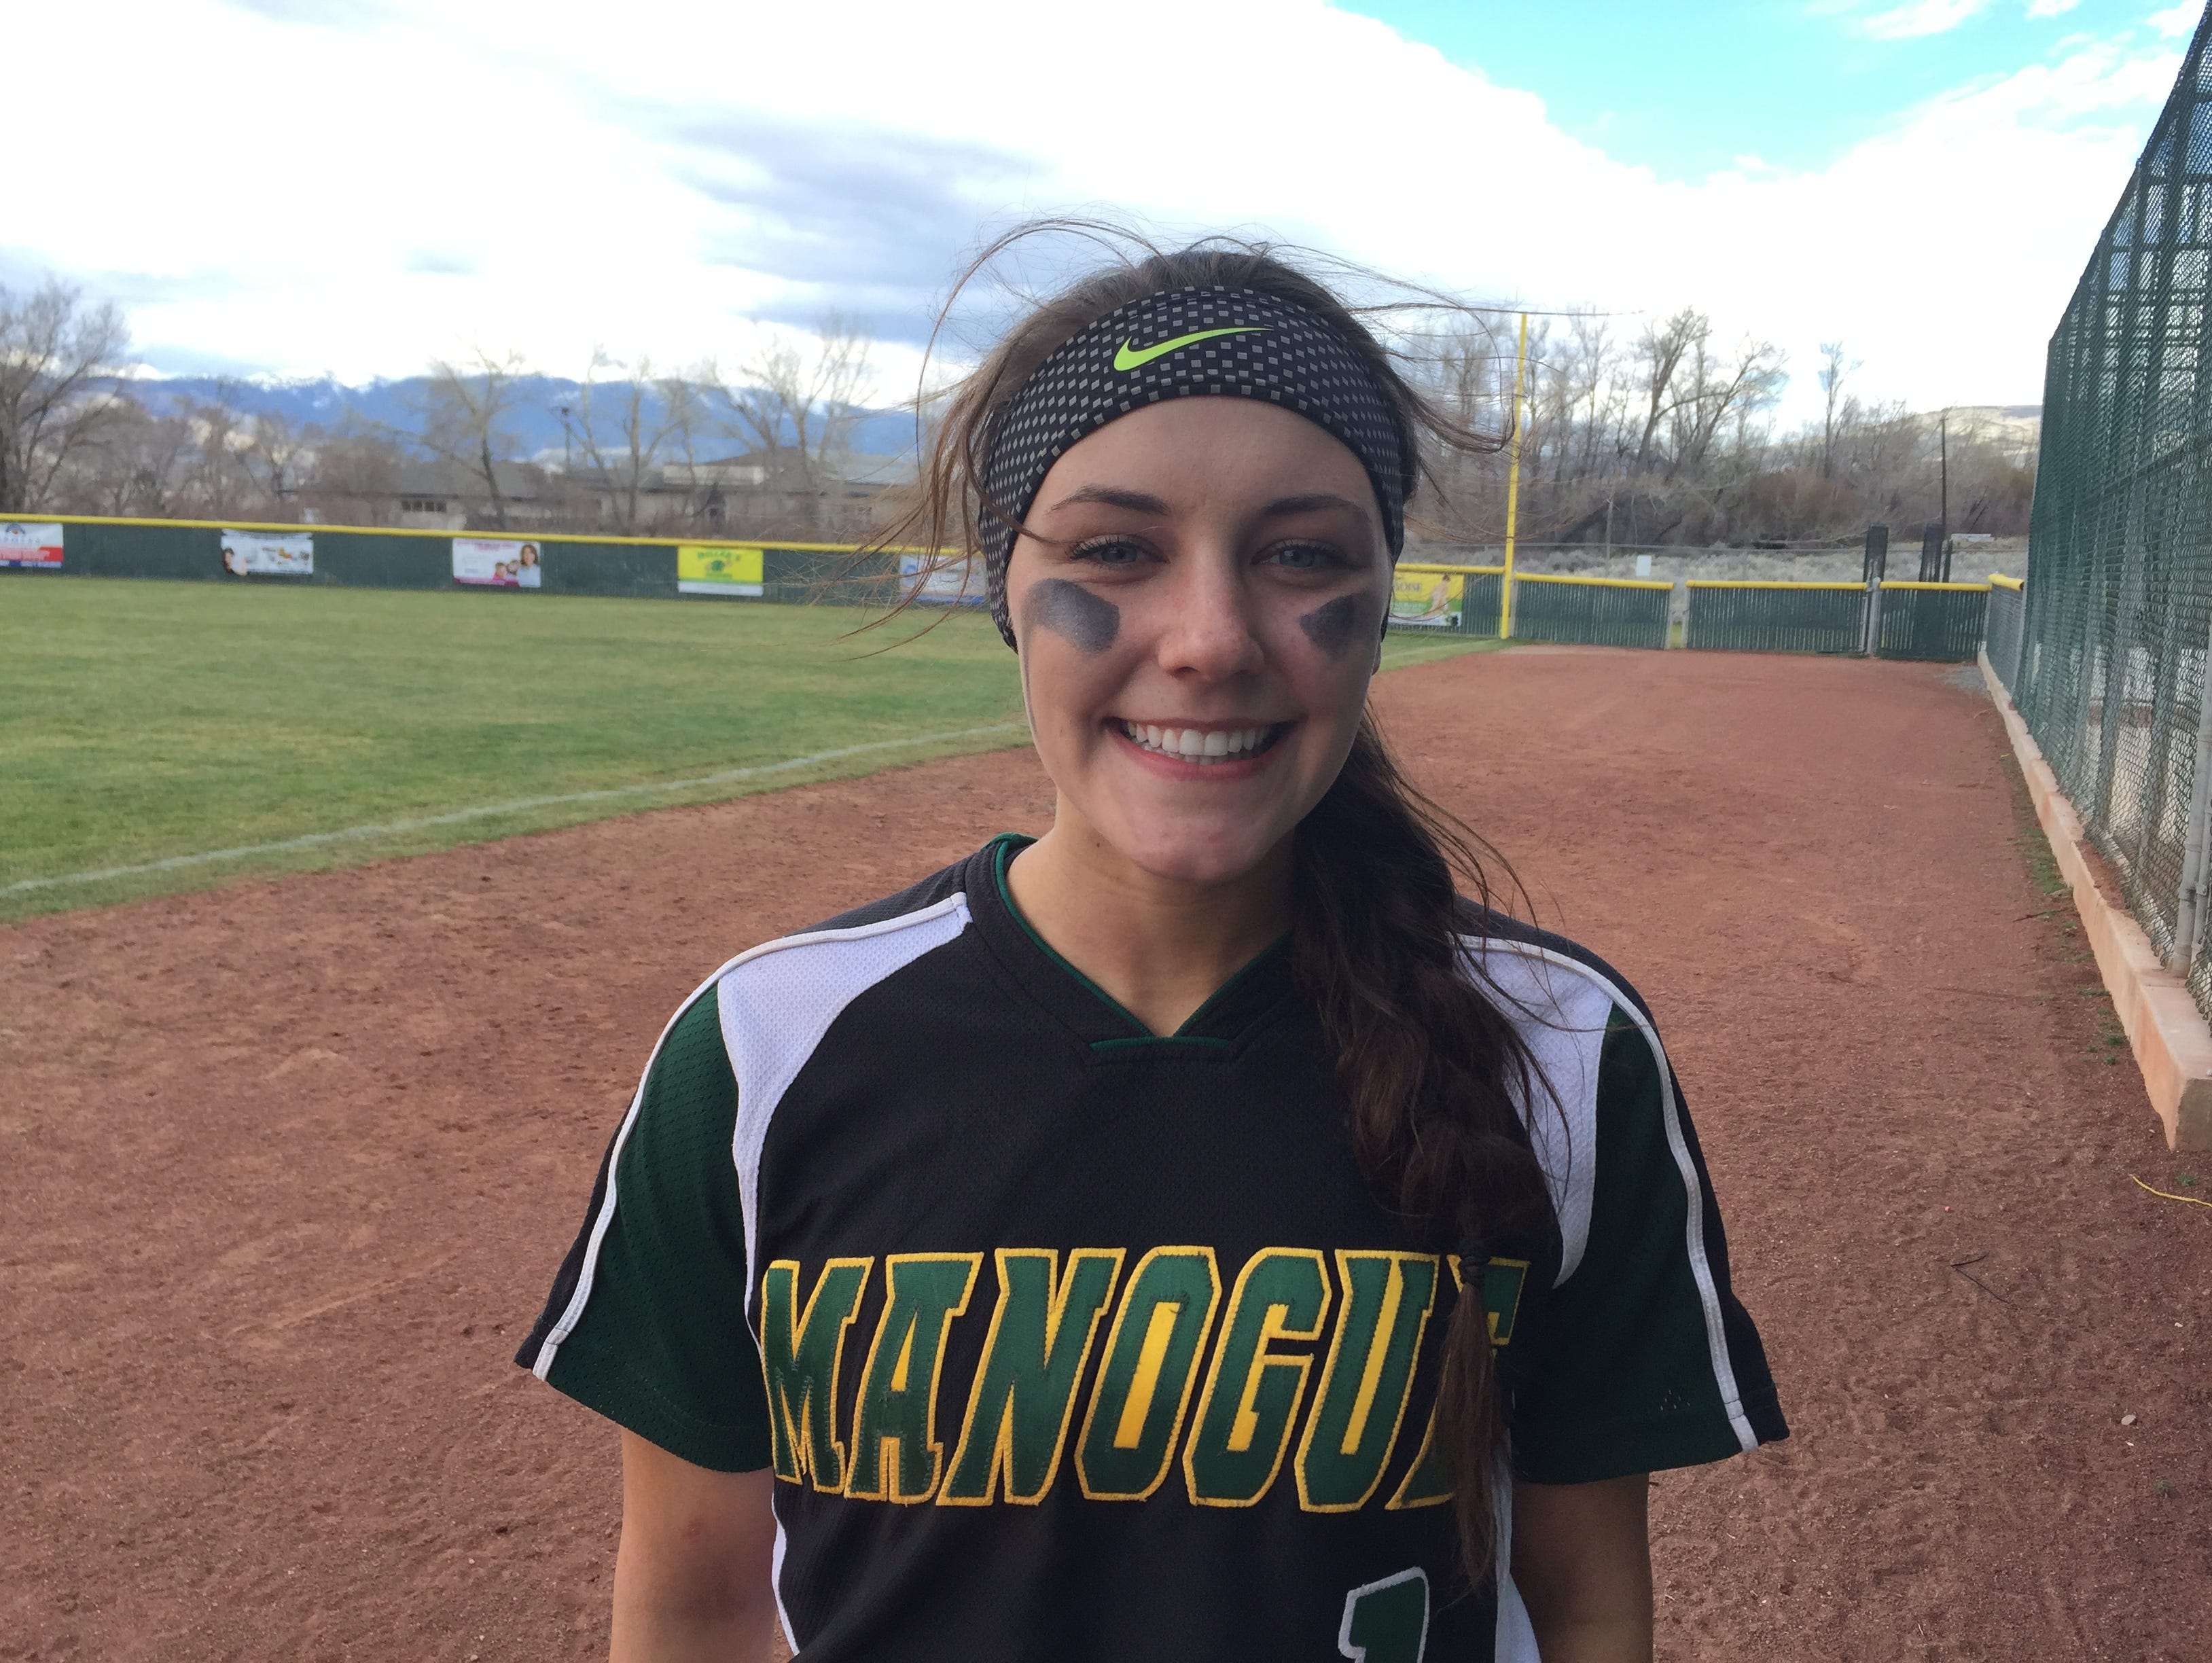 Bishop Manogue sophomore Maggie Joseph got the win in the second game Saturday.